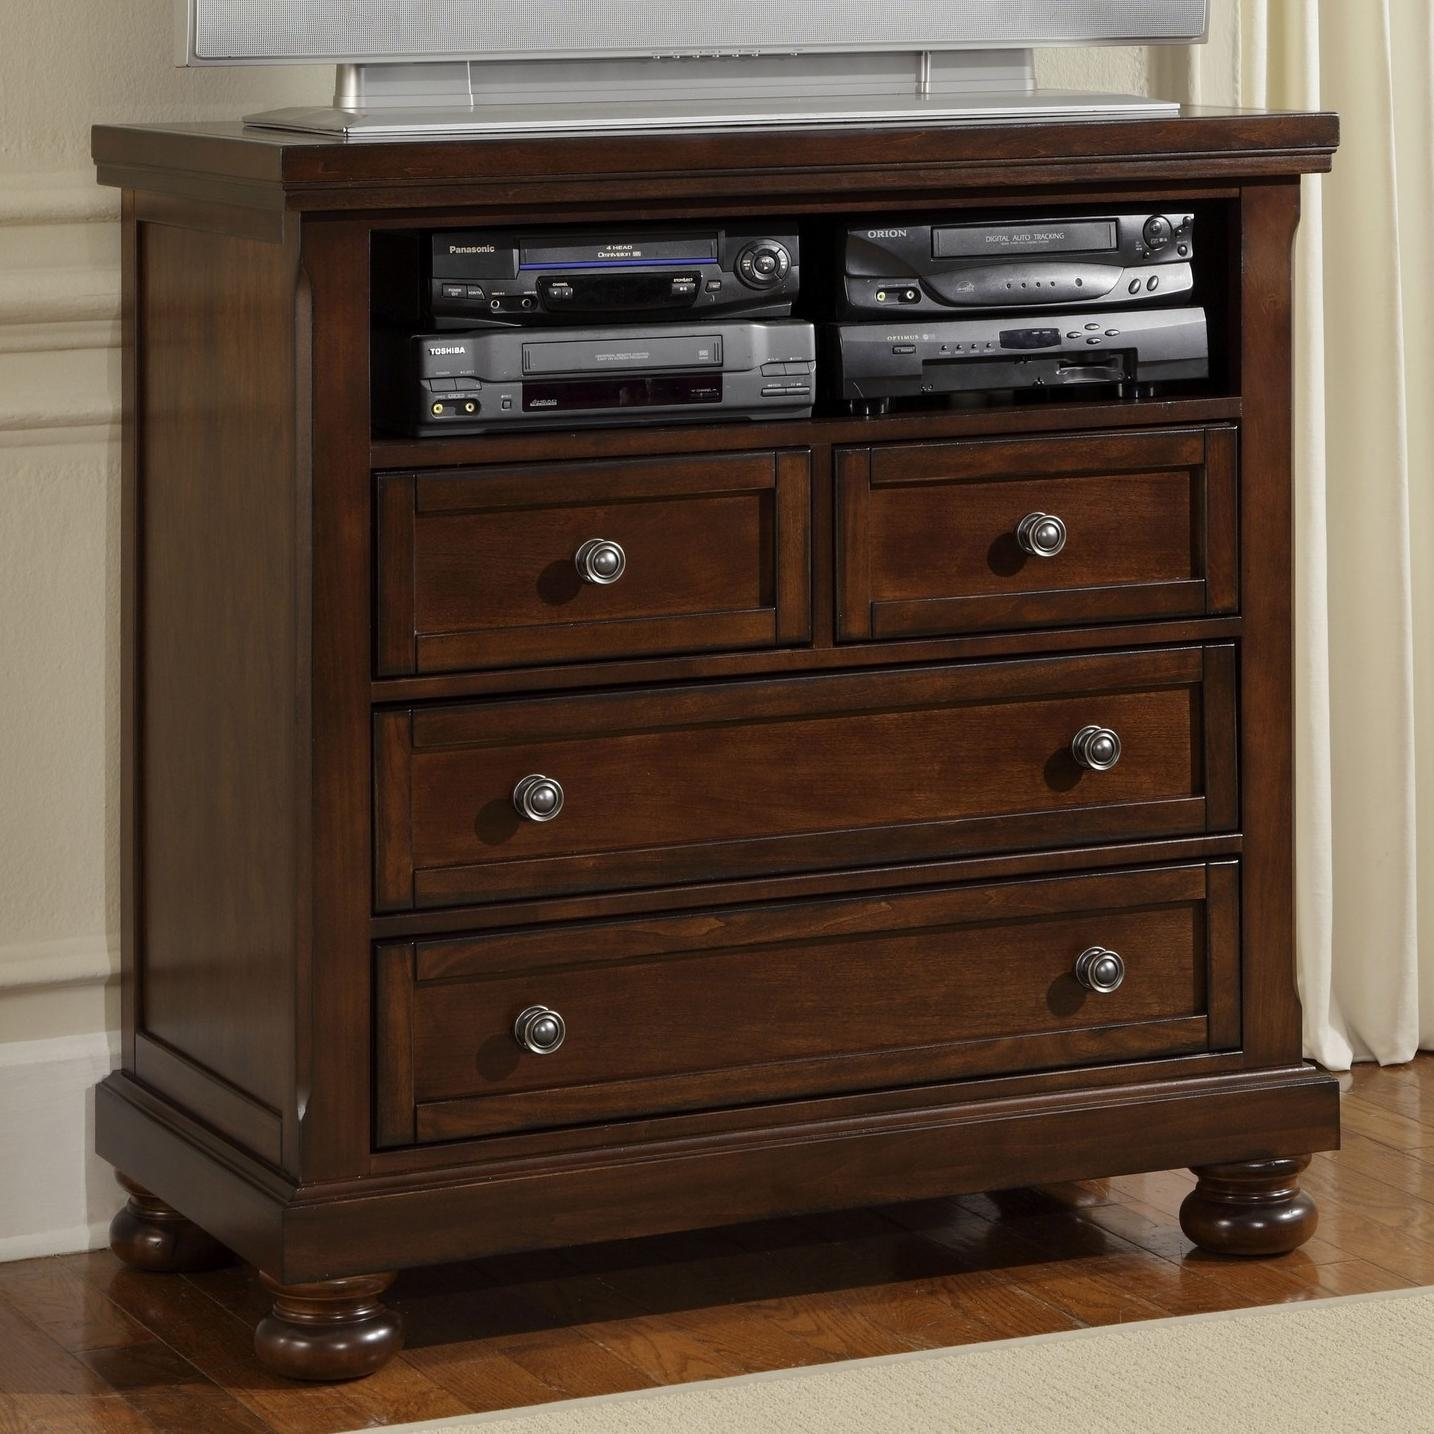 Vaughan Bassett Reflections 530 114 Entertainment Center Media Chest Great American Home Store